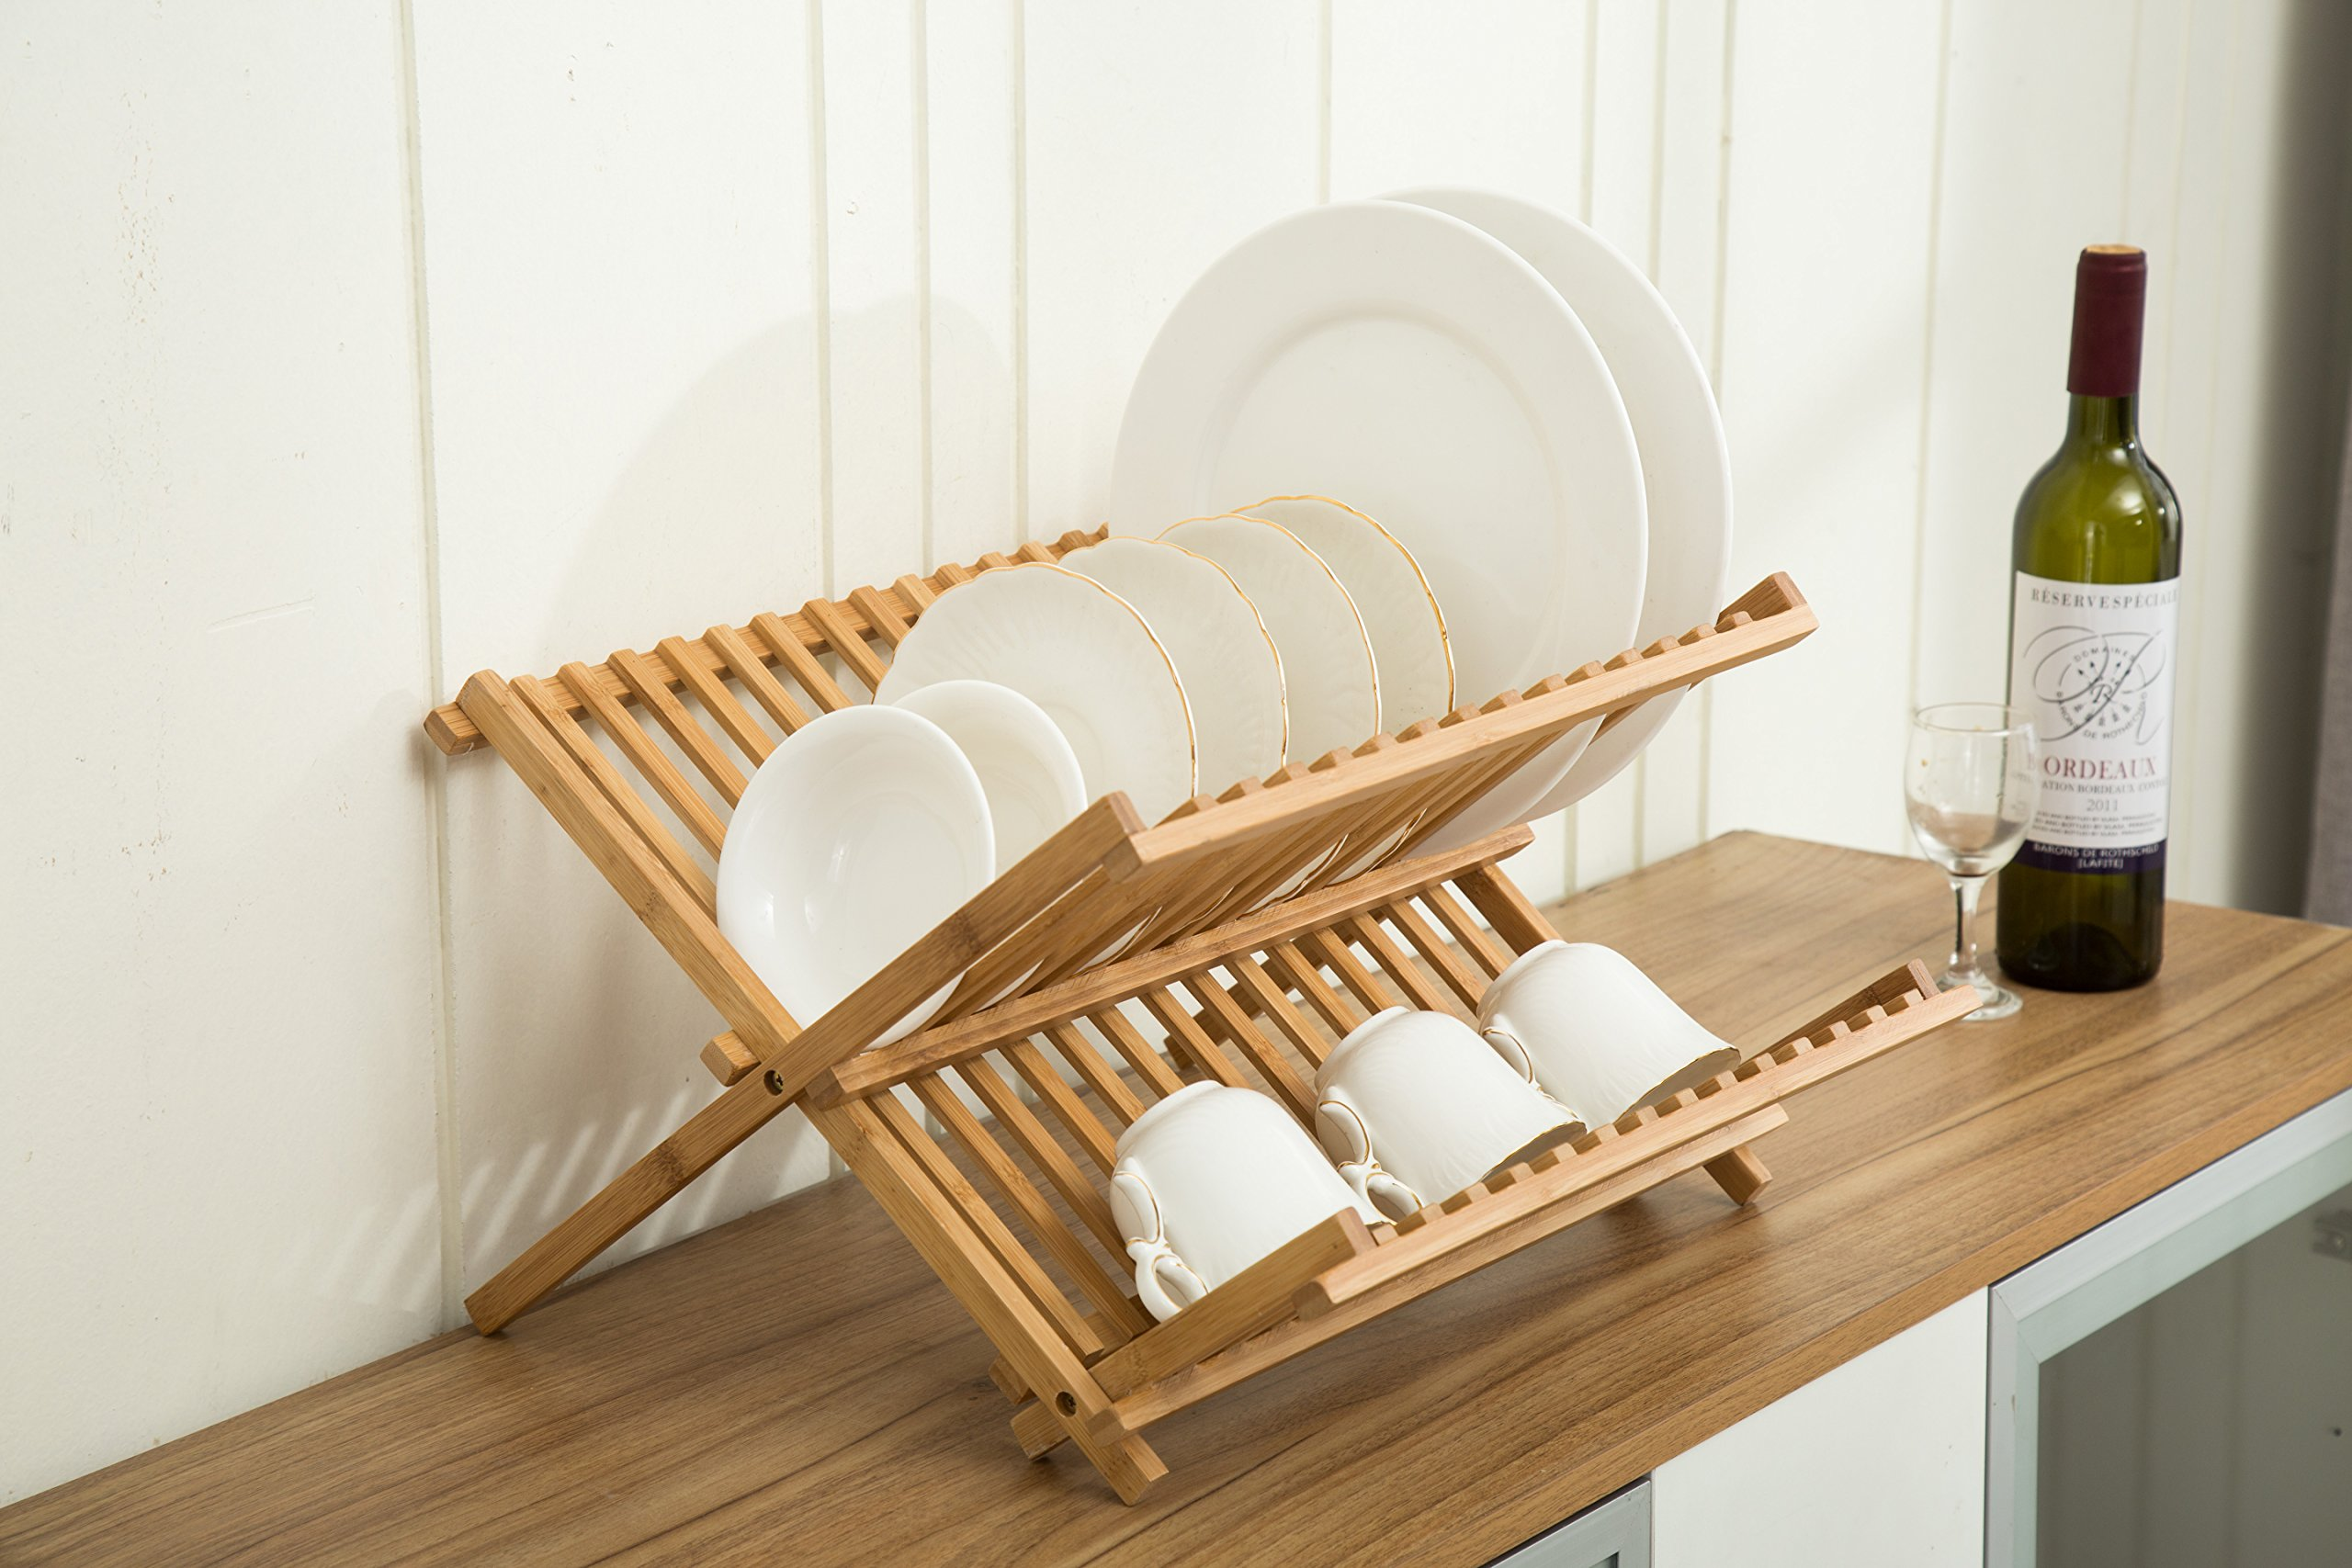 Dish Drying Rack Bamboo Premium Collapsible,for Holding Plates and Lower Shelf for Cups, Glass and Utensils,Holder Utensil Drainer